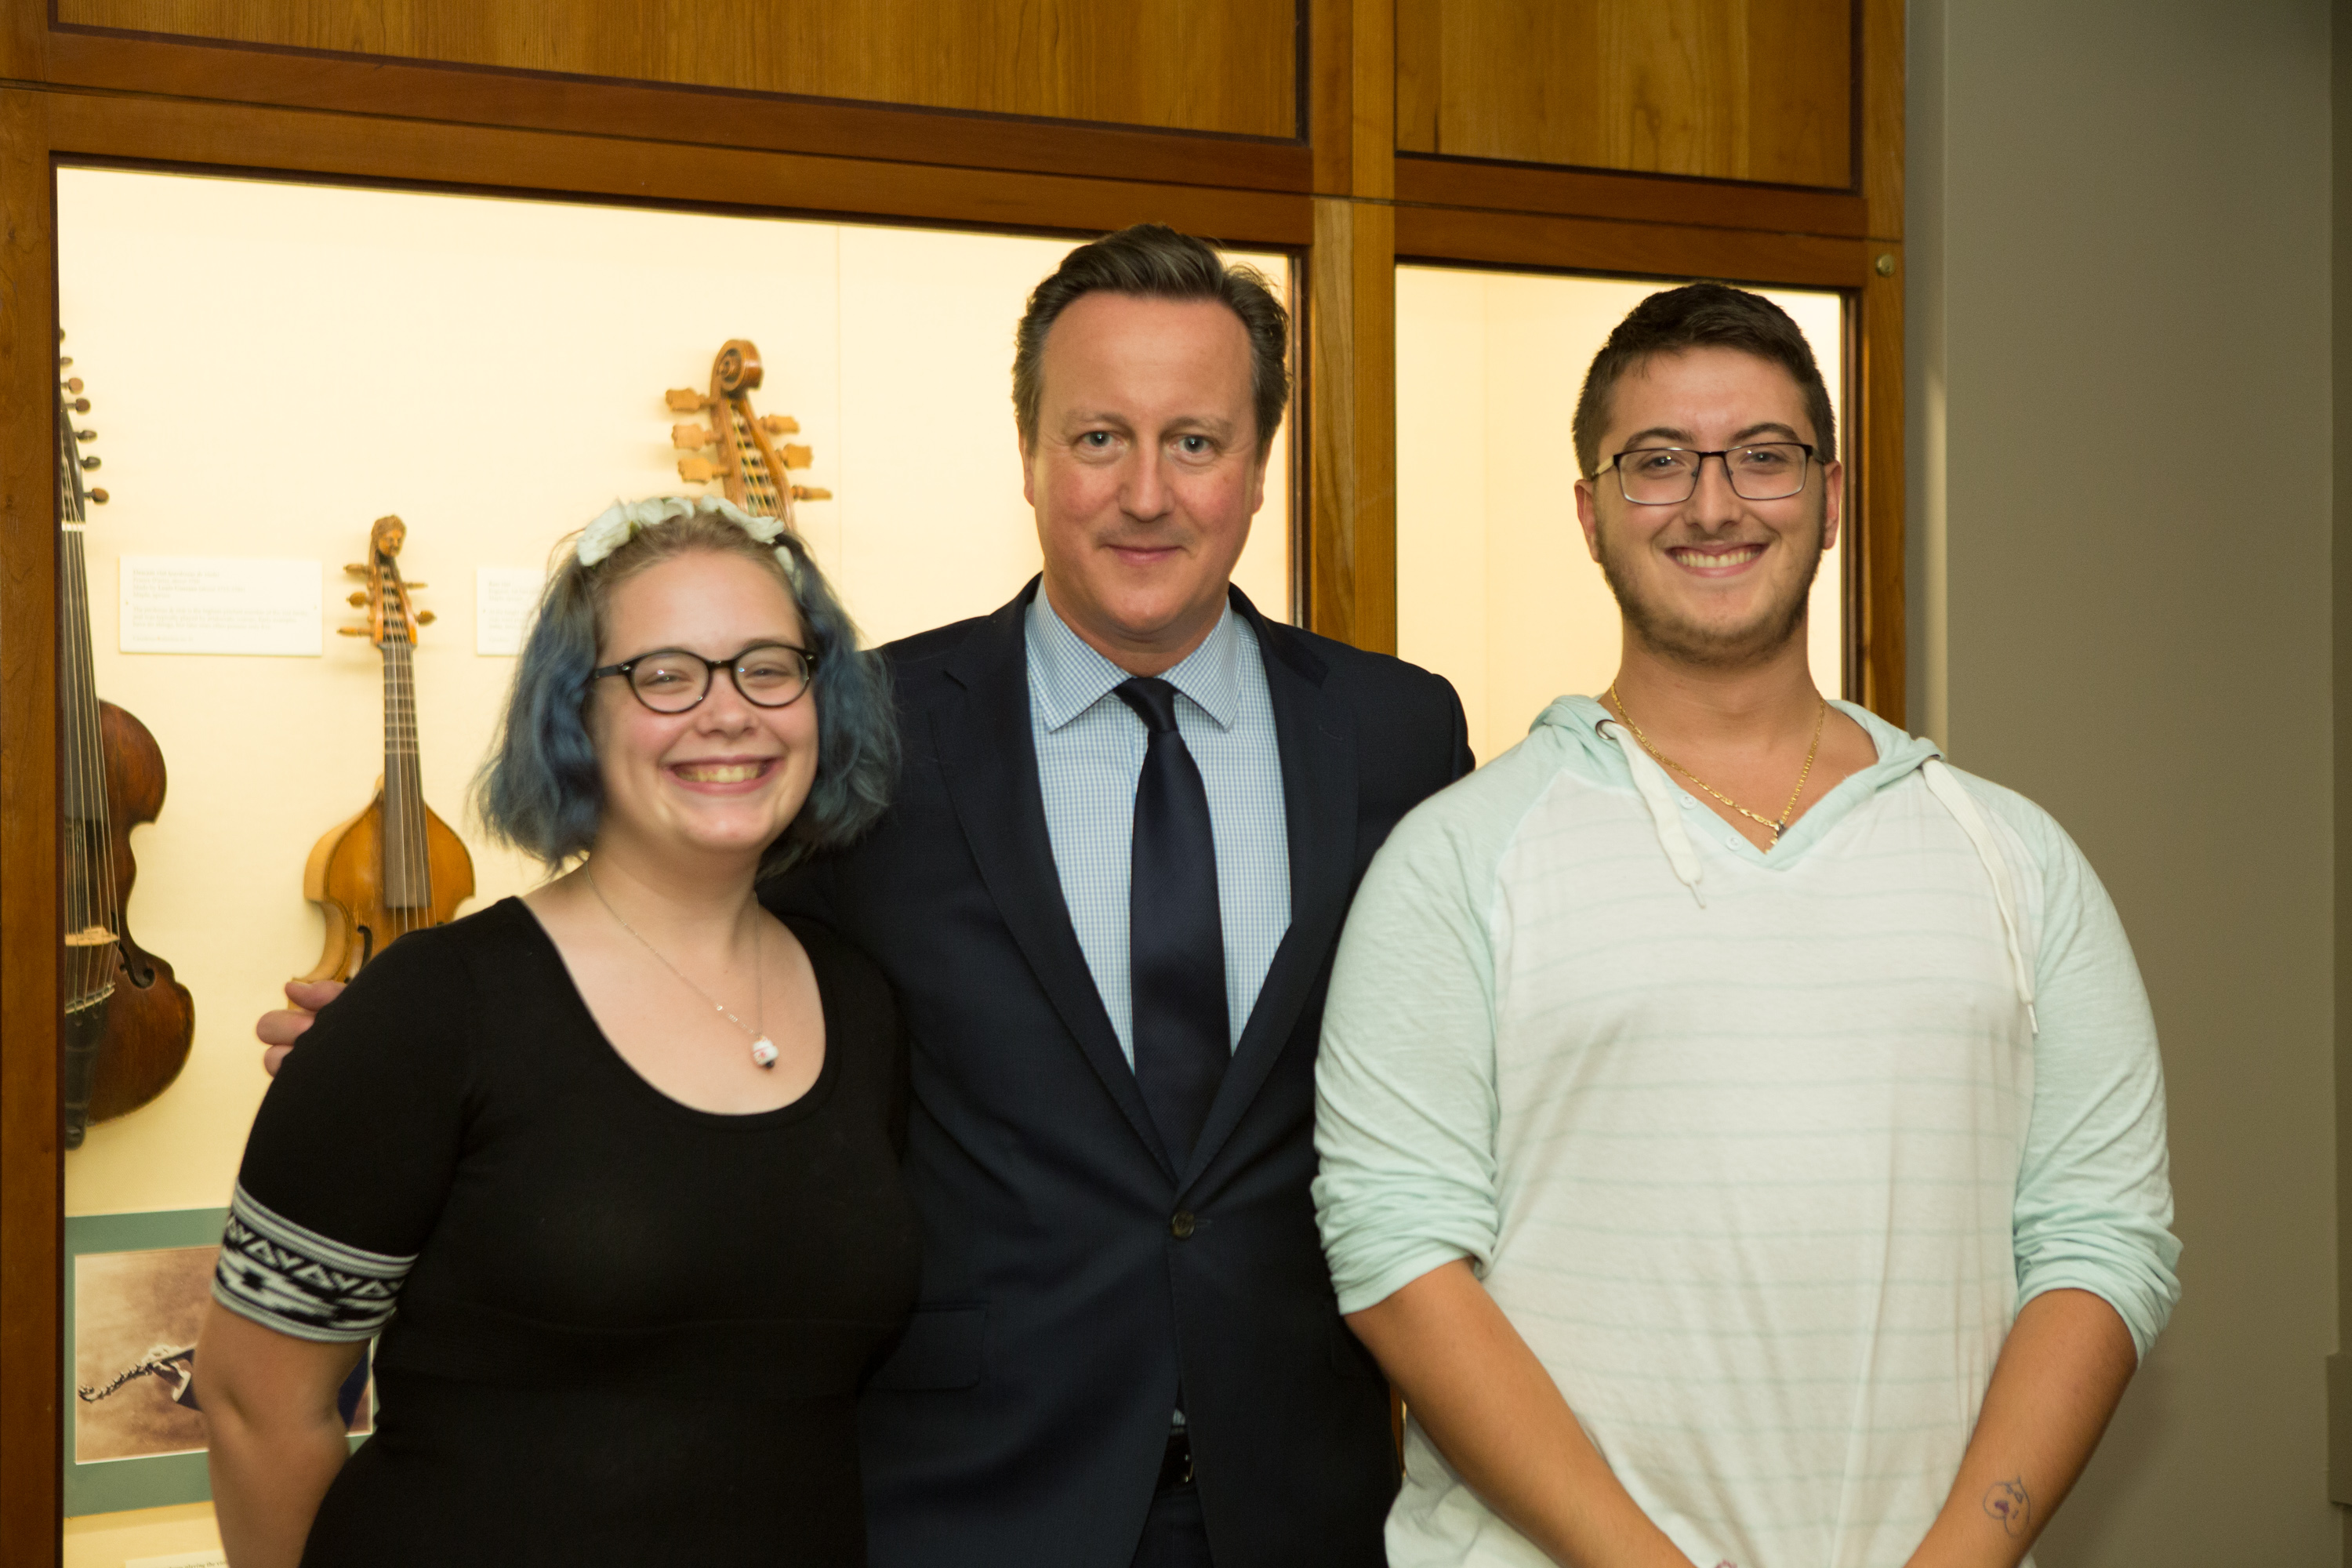 David Cameron, Camryn Vevilacqua, and Jonathan Cunha posing together for a picture